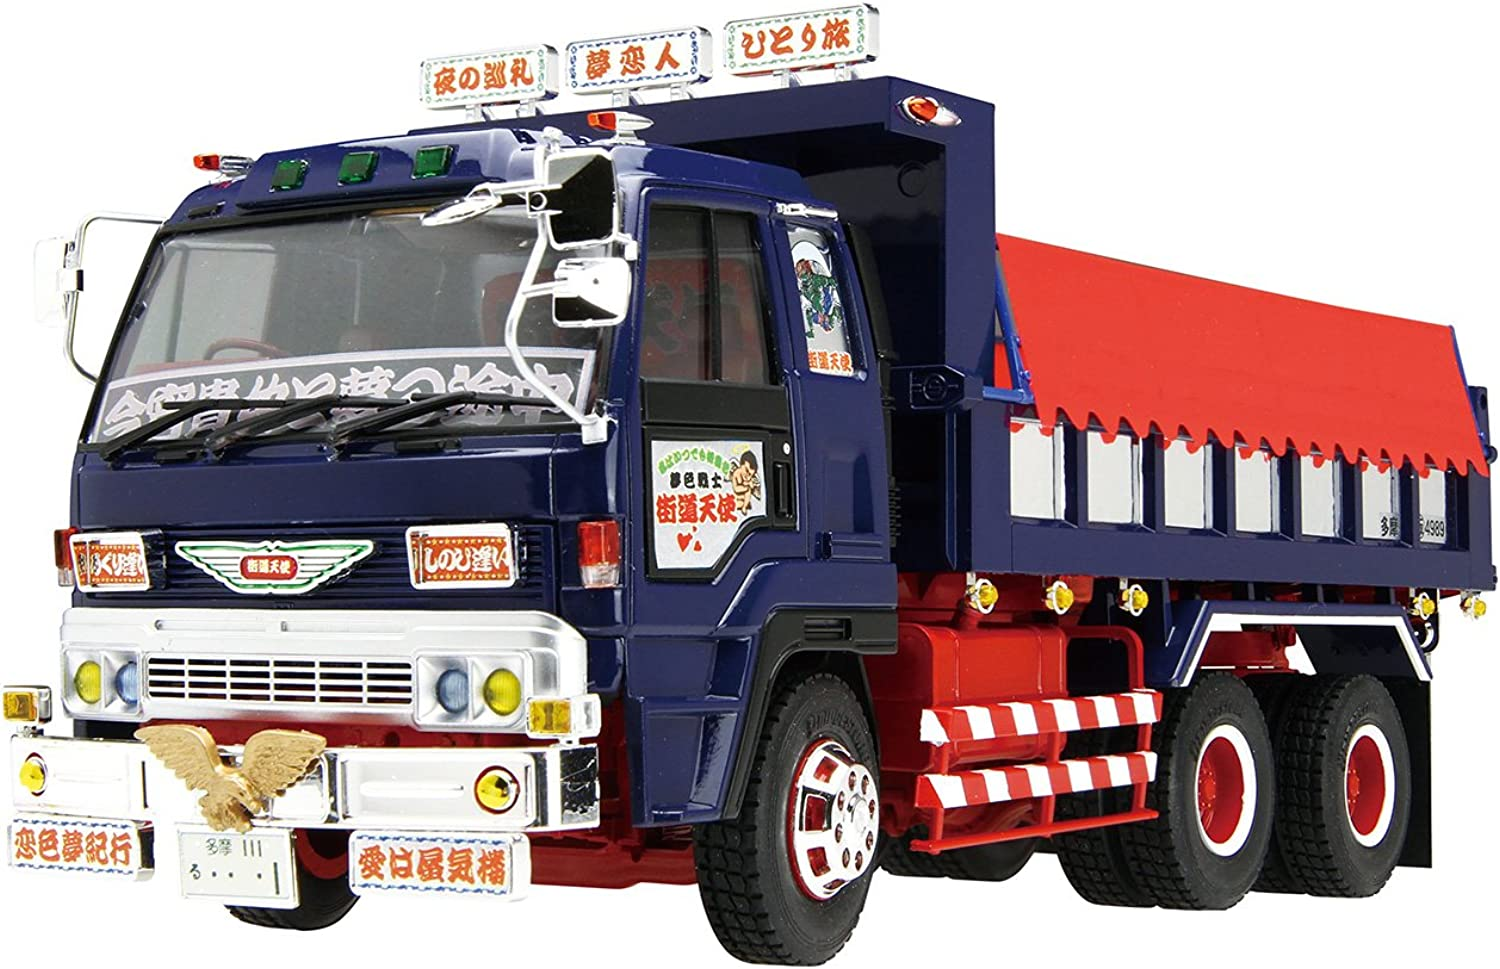 1 32 Rapporto Truck Series No.16 strada Angel (gree disautoica) (japan import)